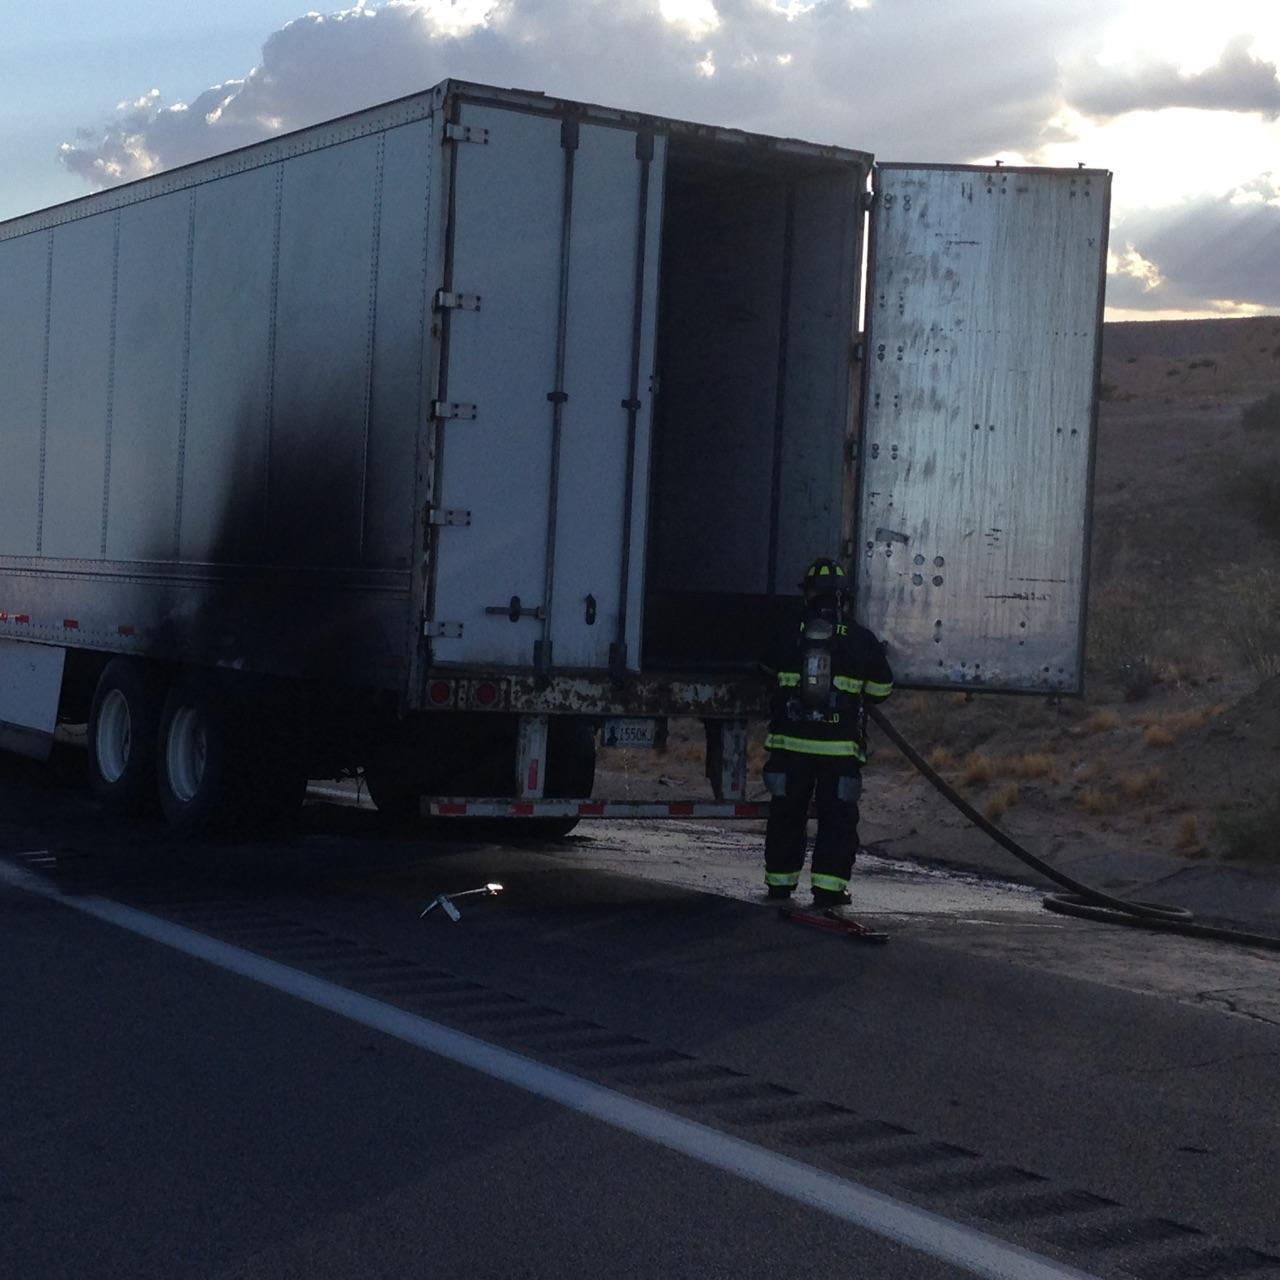 Firefighters Make Quick Work of Semi Fire